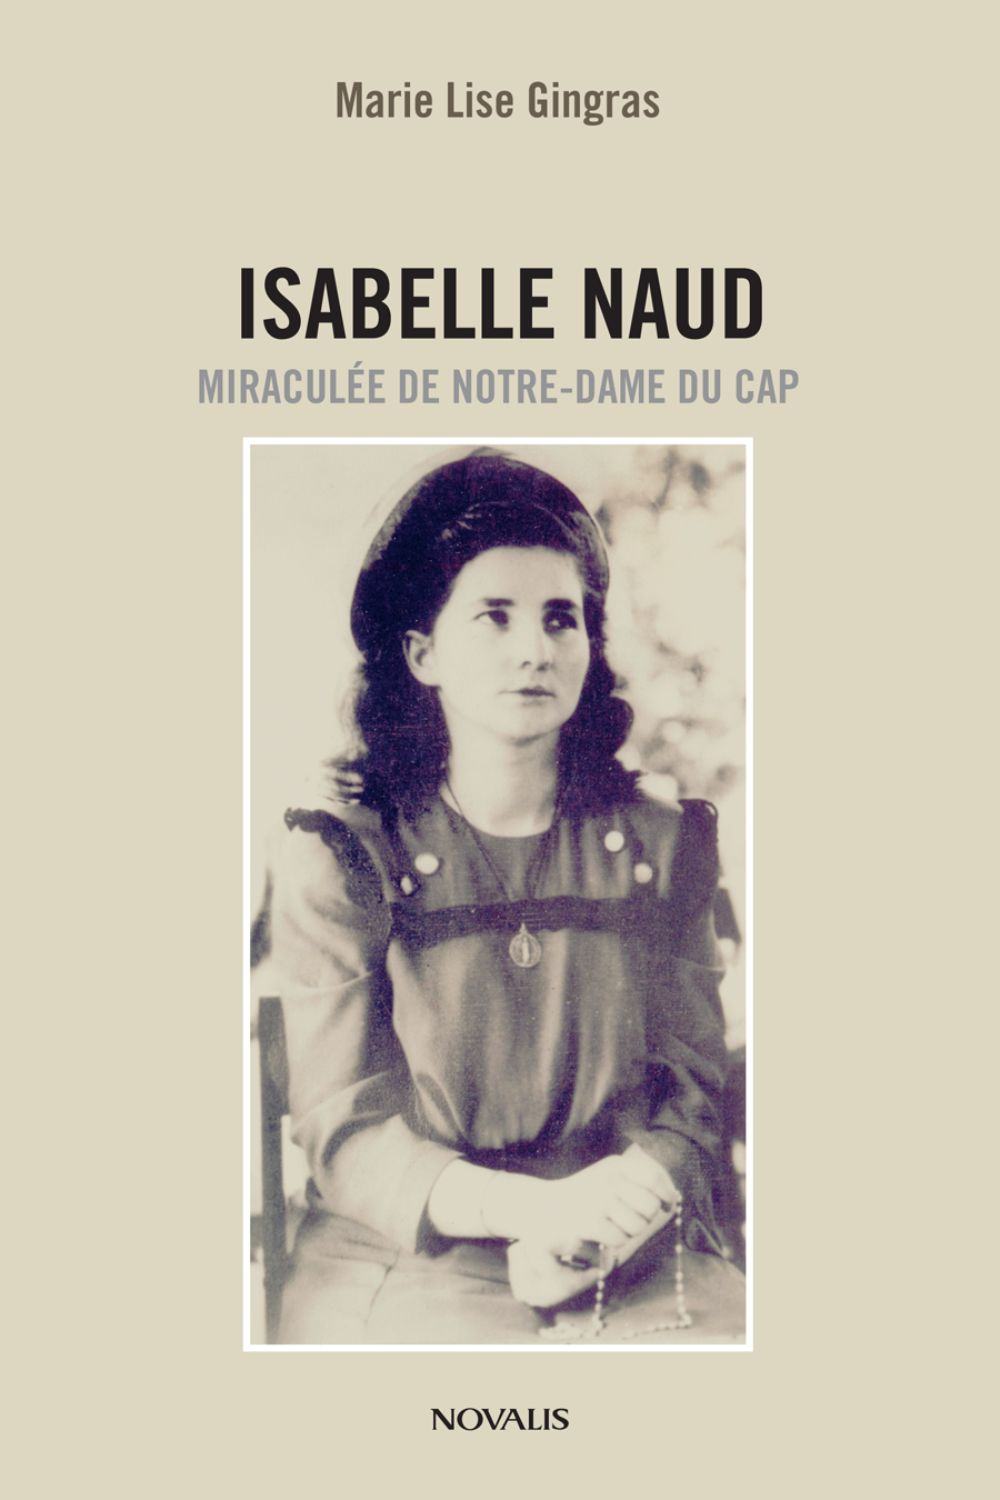 Isabelle Naud